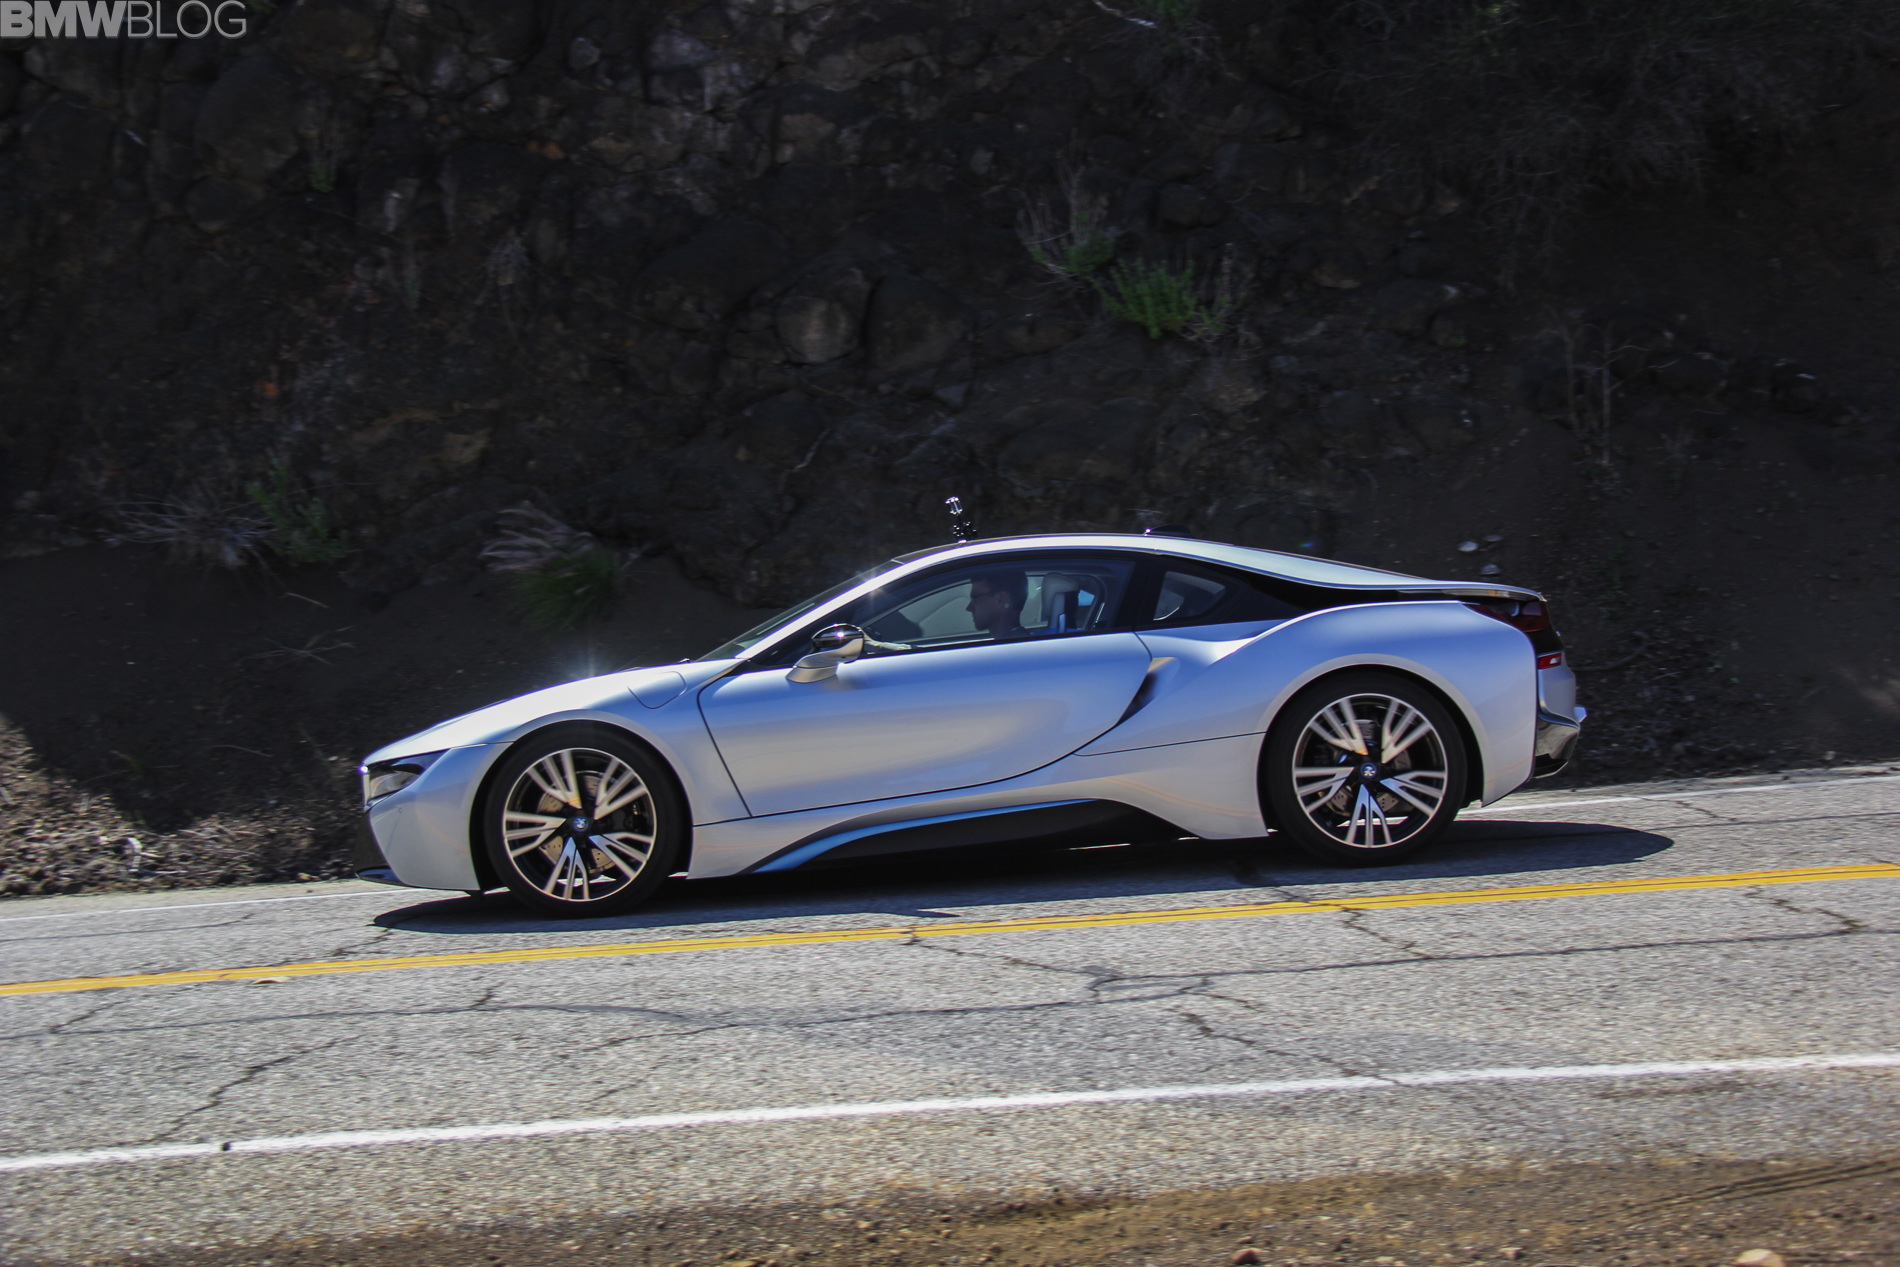 2017 Bmw I8 Drive Review 13 750x500